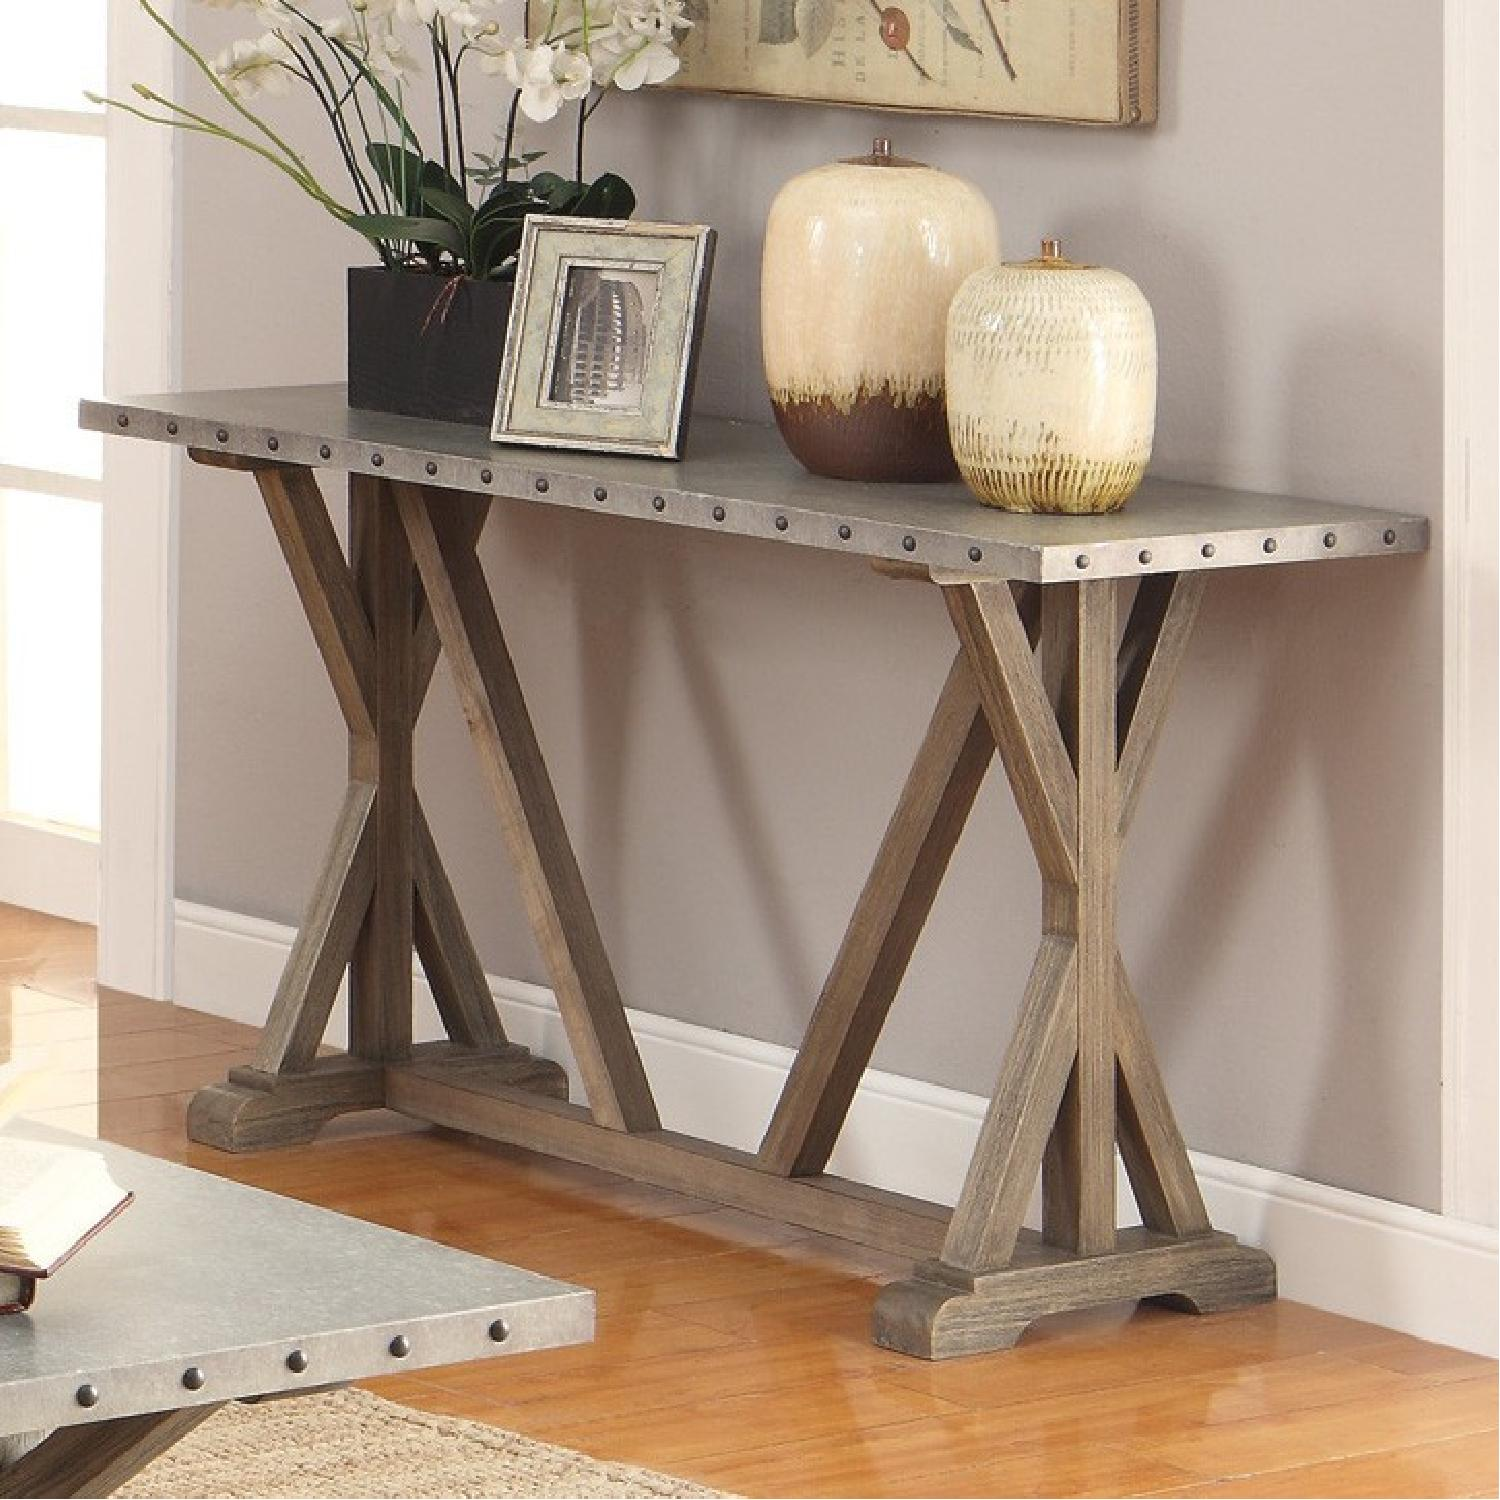 Rustic Industrial Style CoffeeTable-1